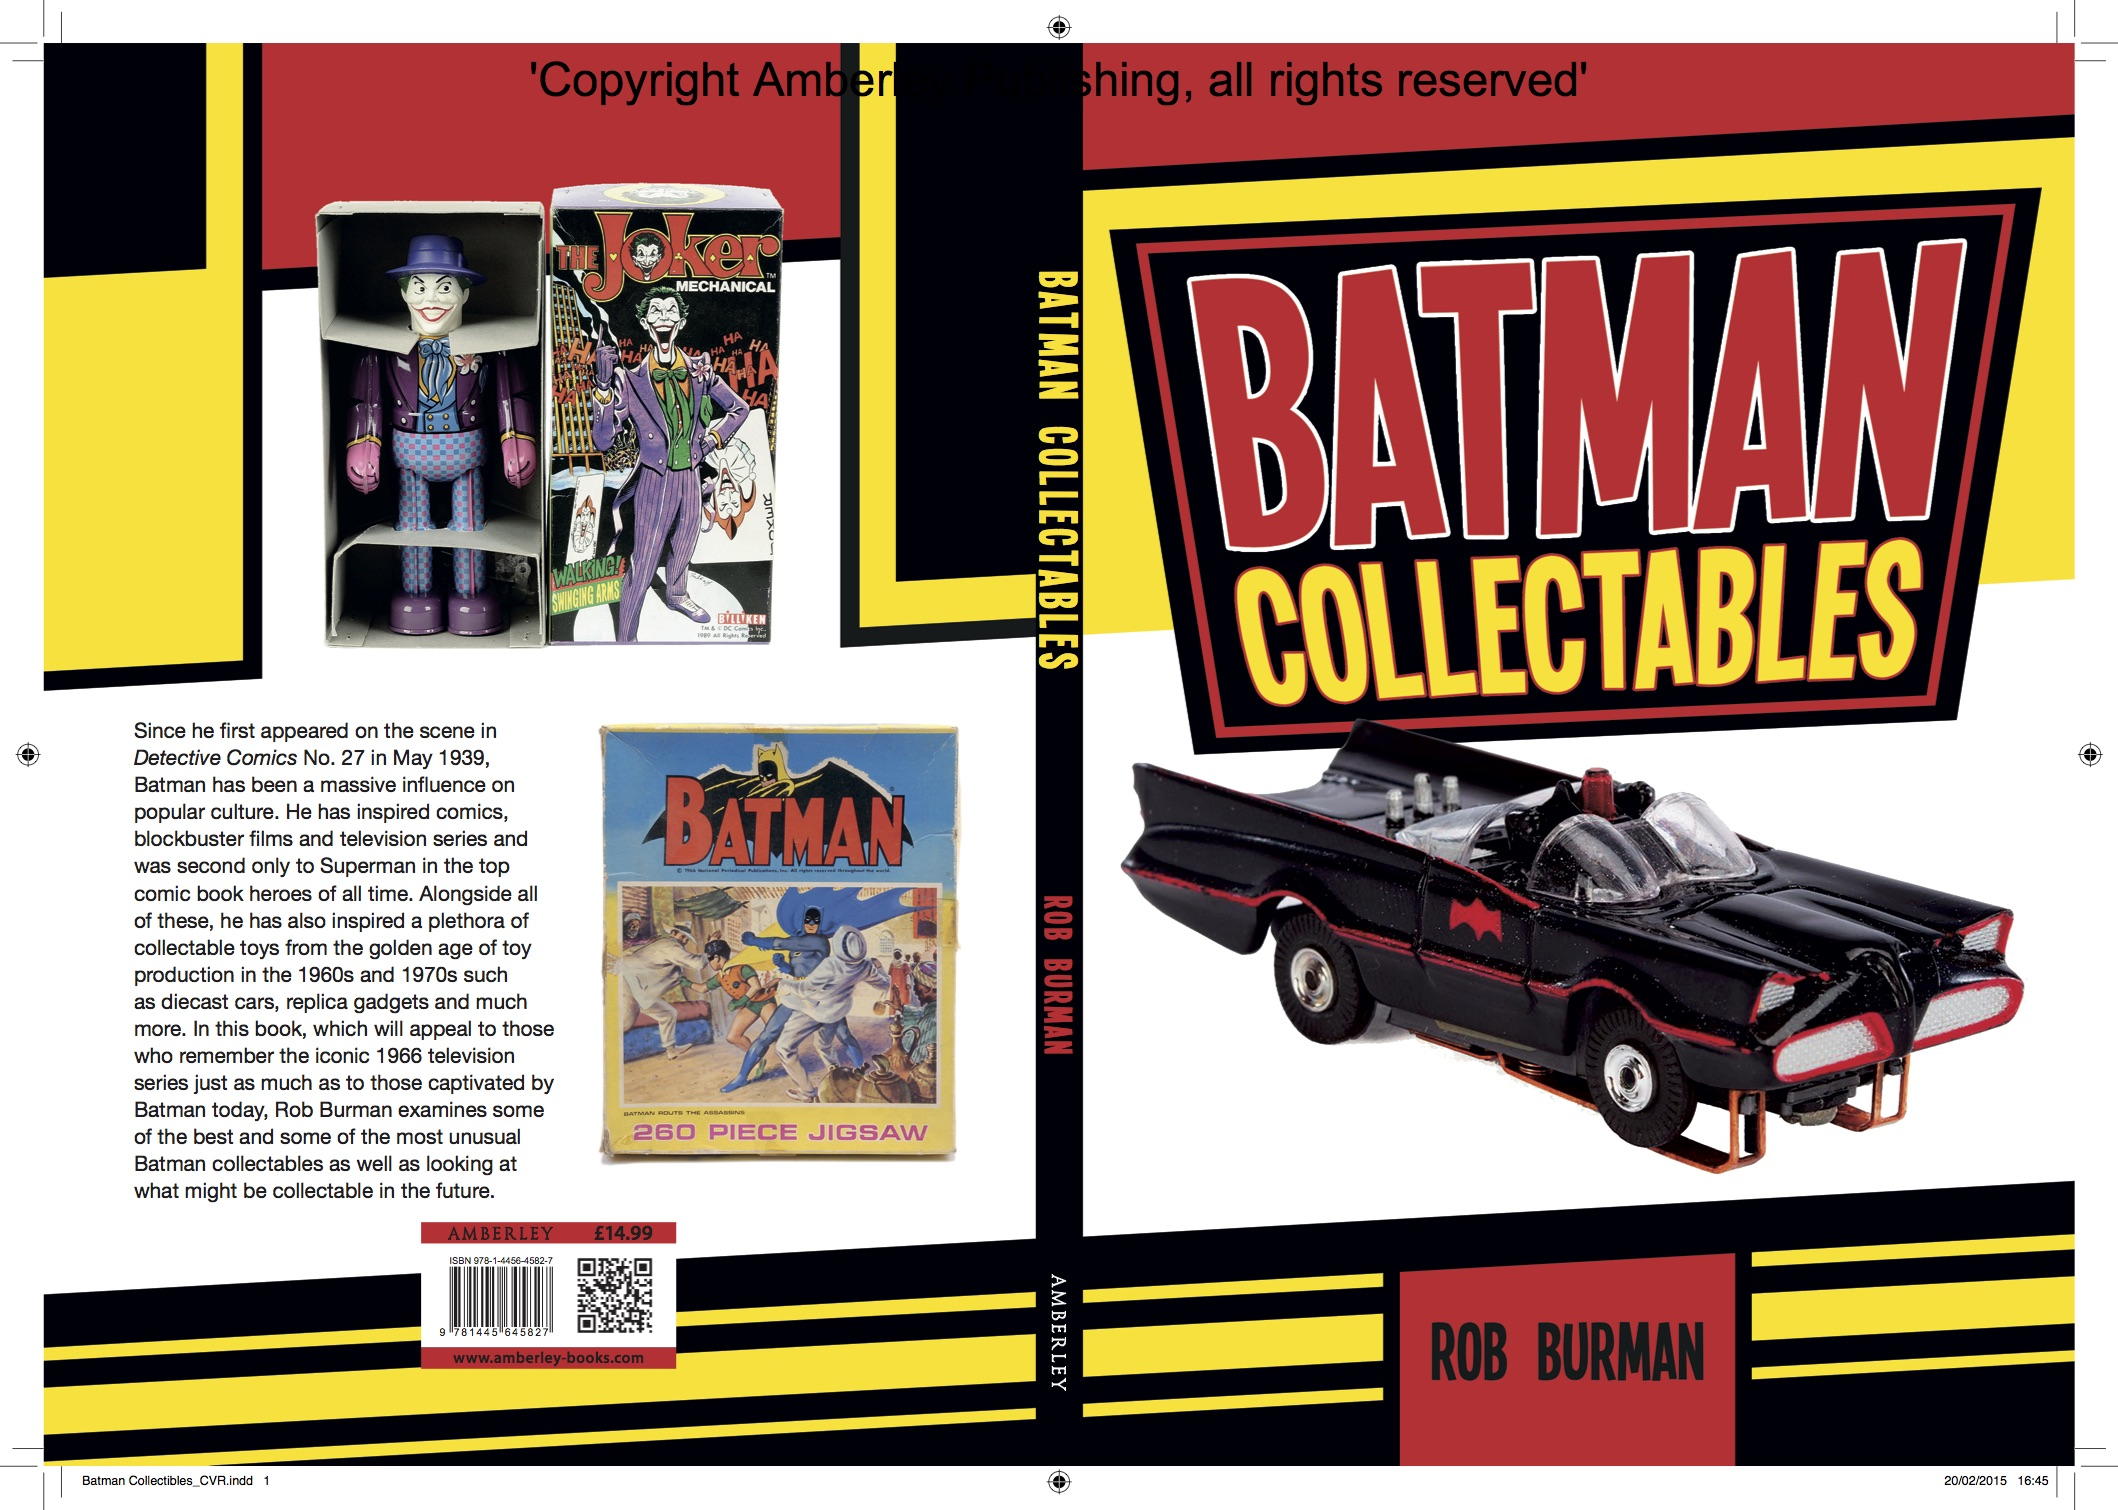 Batman Collectibles Merged File [TXT]